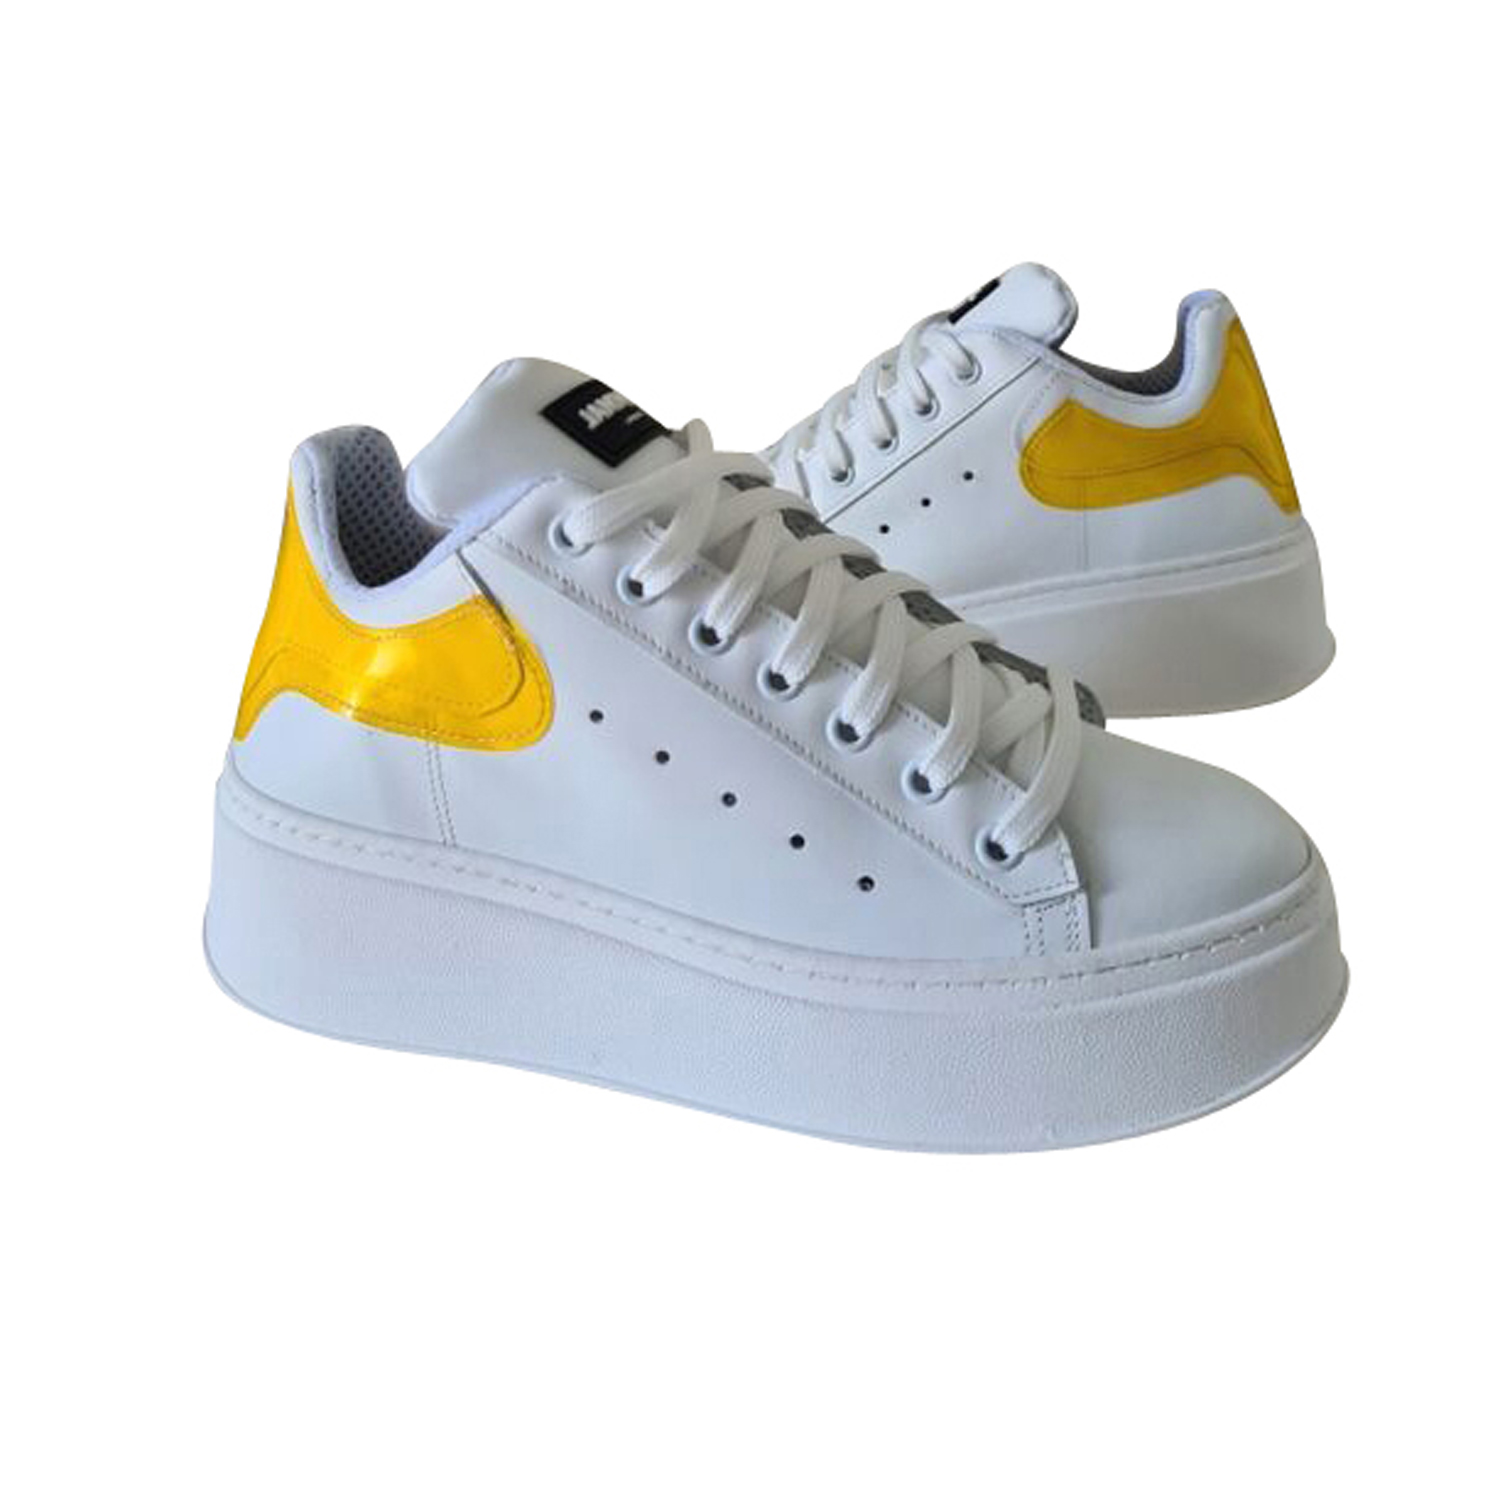 JAMMERS LONDON SNEAKERS TOTAL BIANCO/GIALLO